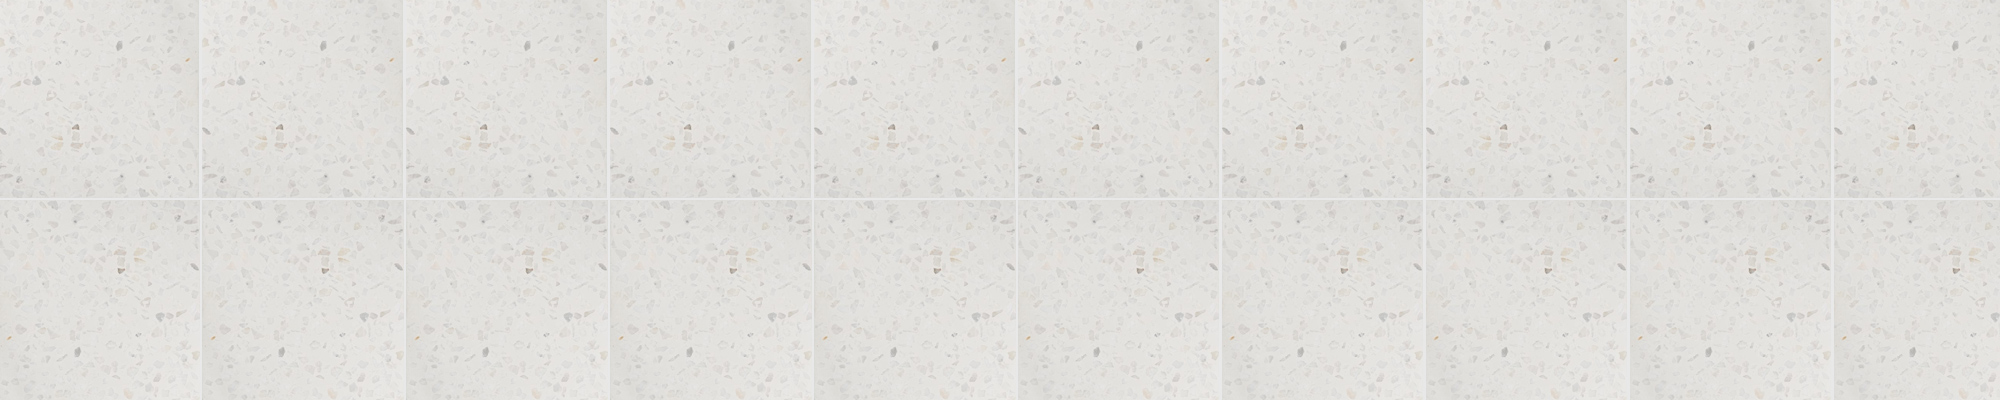 Terrazzo Tile: The Unsung Hero of the Tiling World